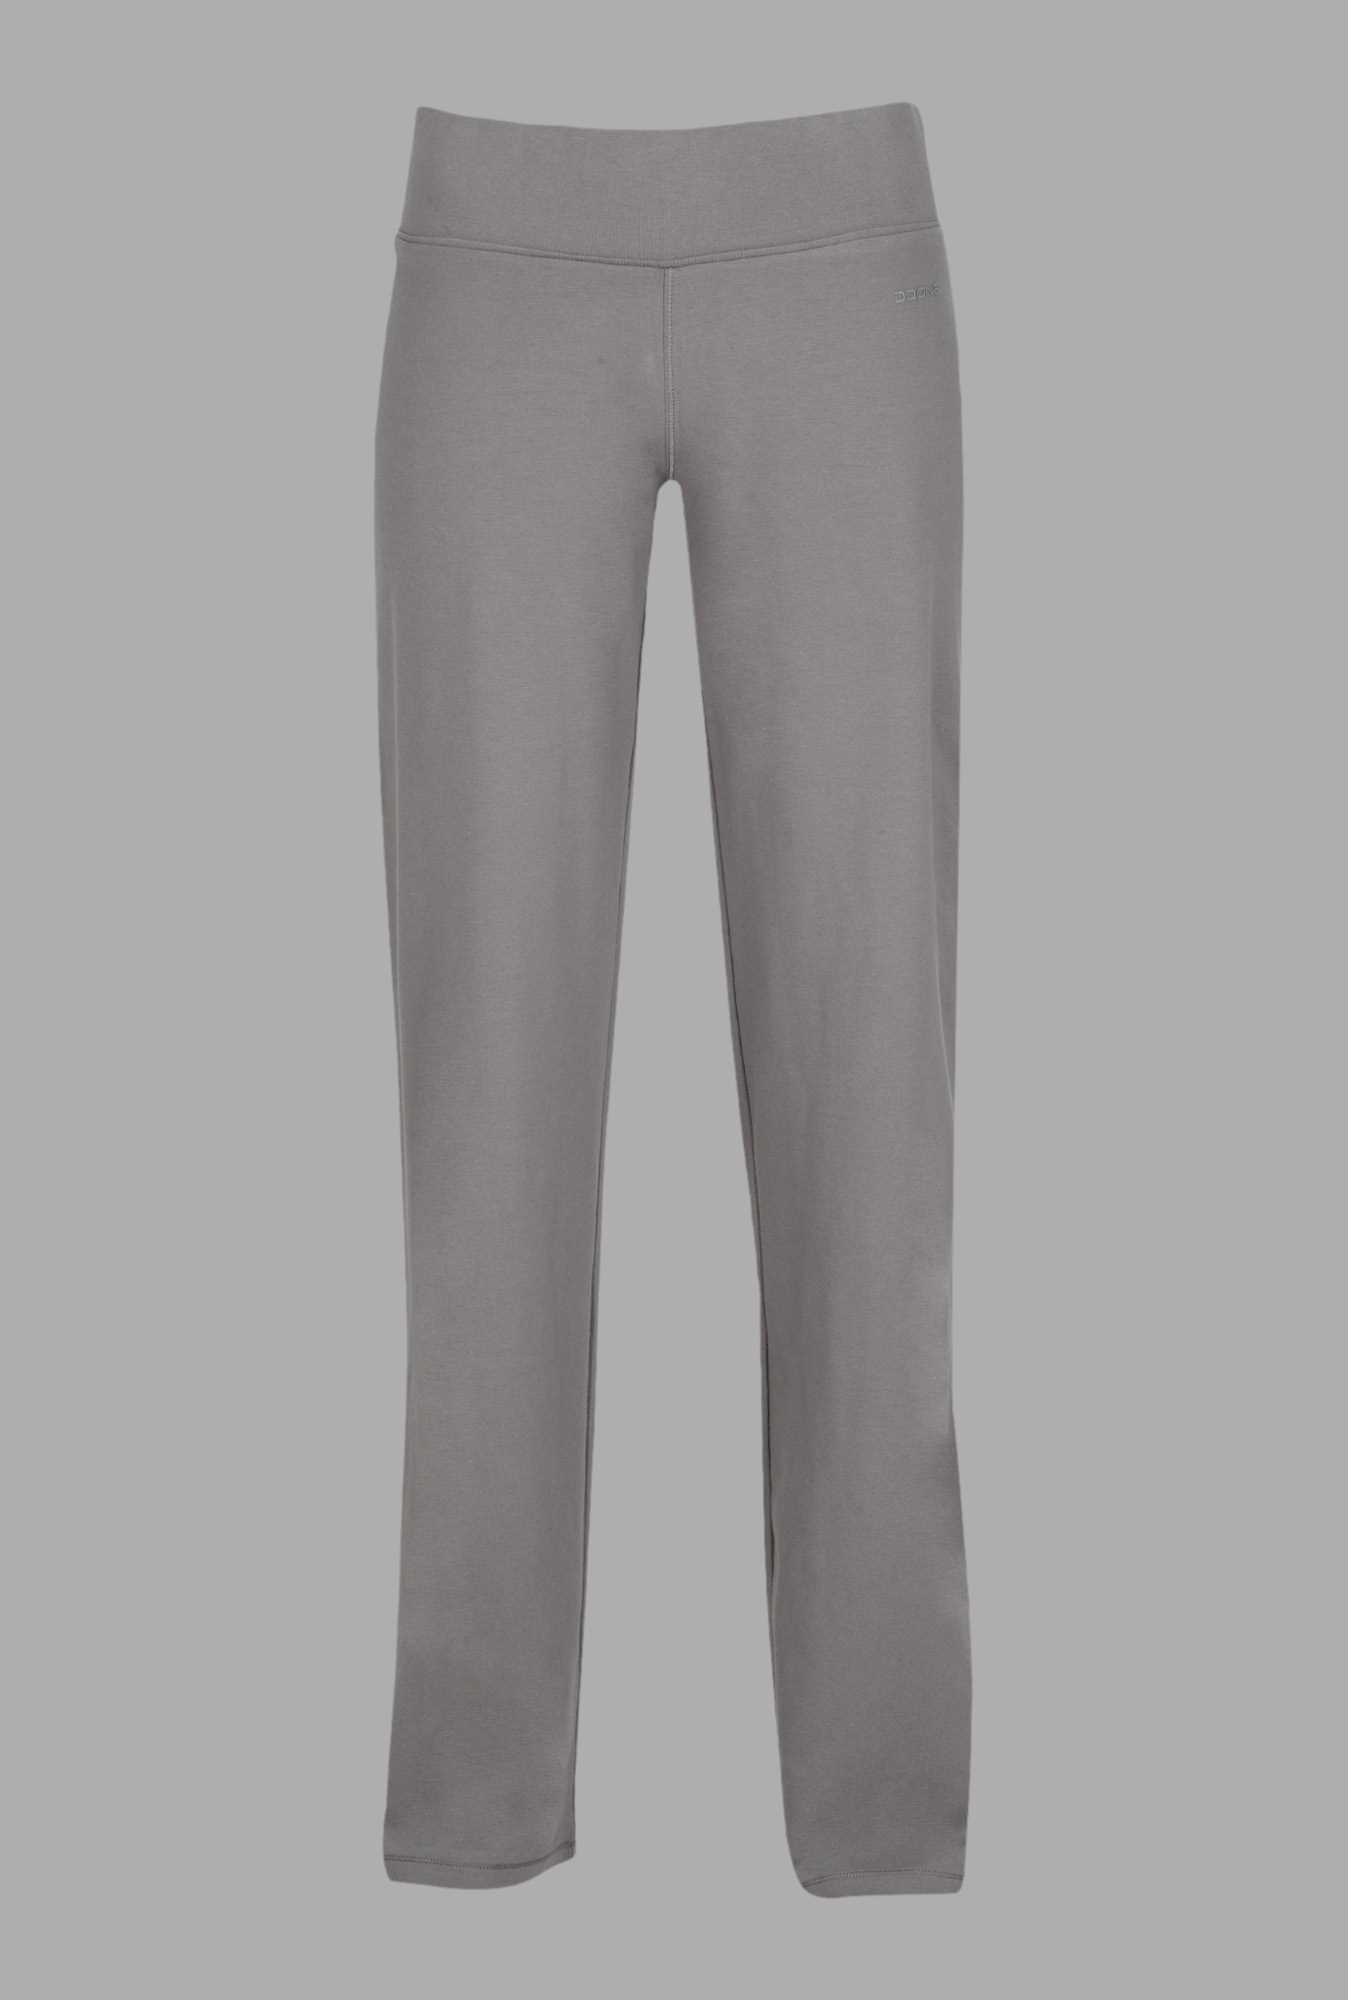 Doone Dark Grey Training Track Pants